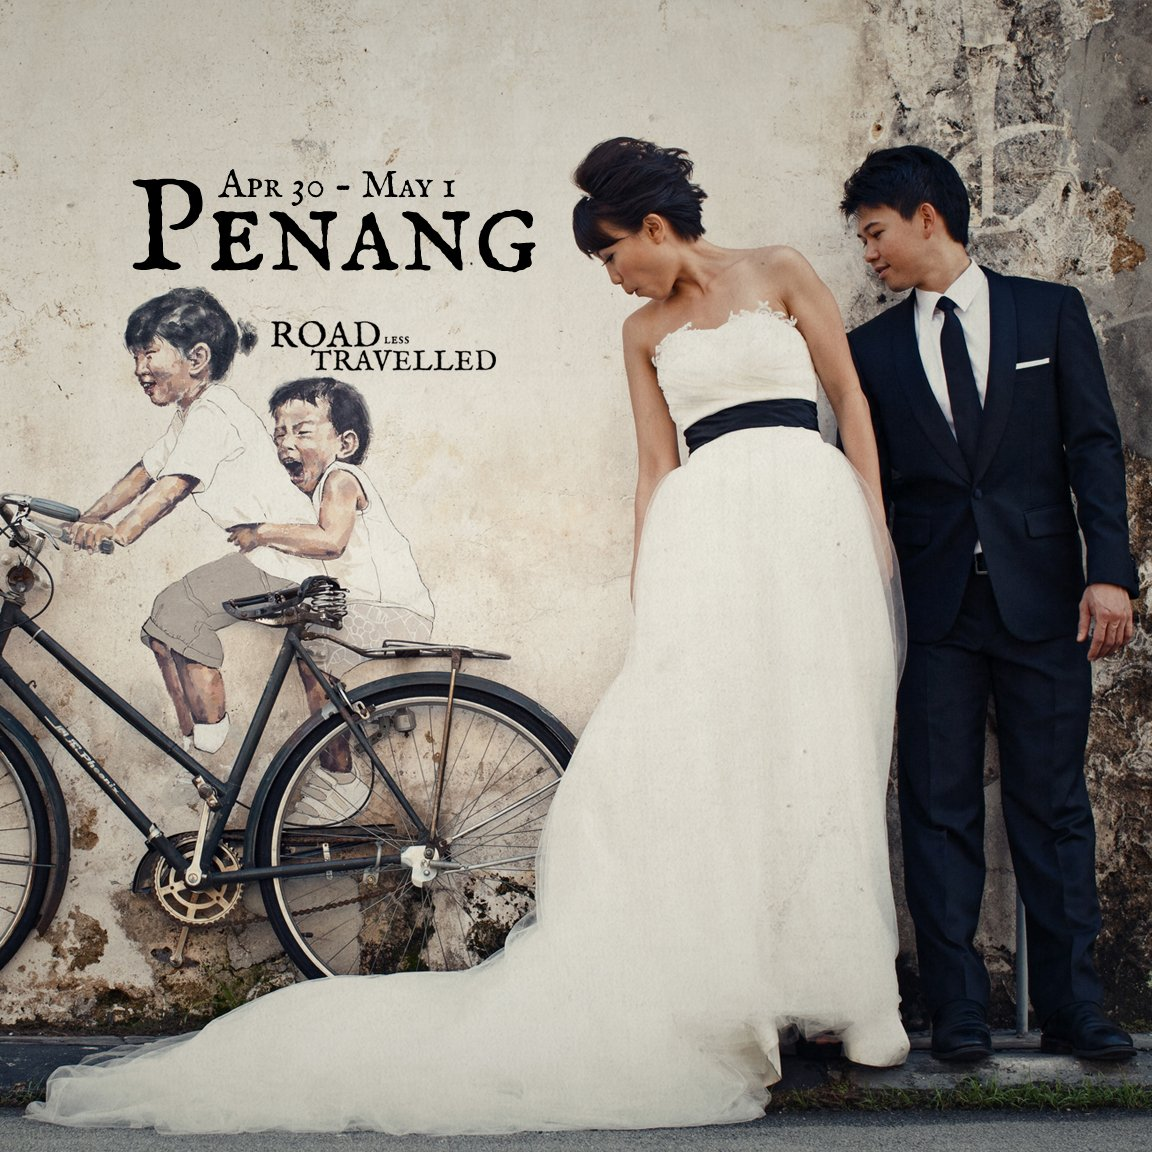 Overseas Pre-Wedding / Penang / Film Wedding Photography by Wedding Film Photographer Brian Ho from thegaleria